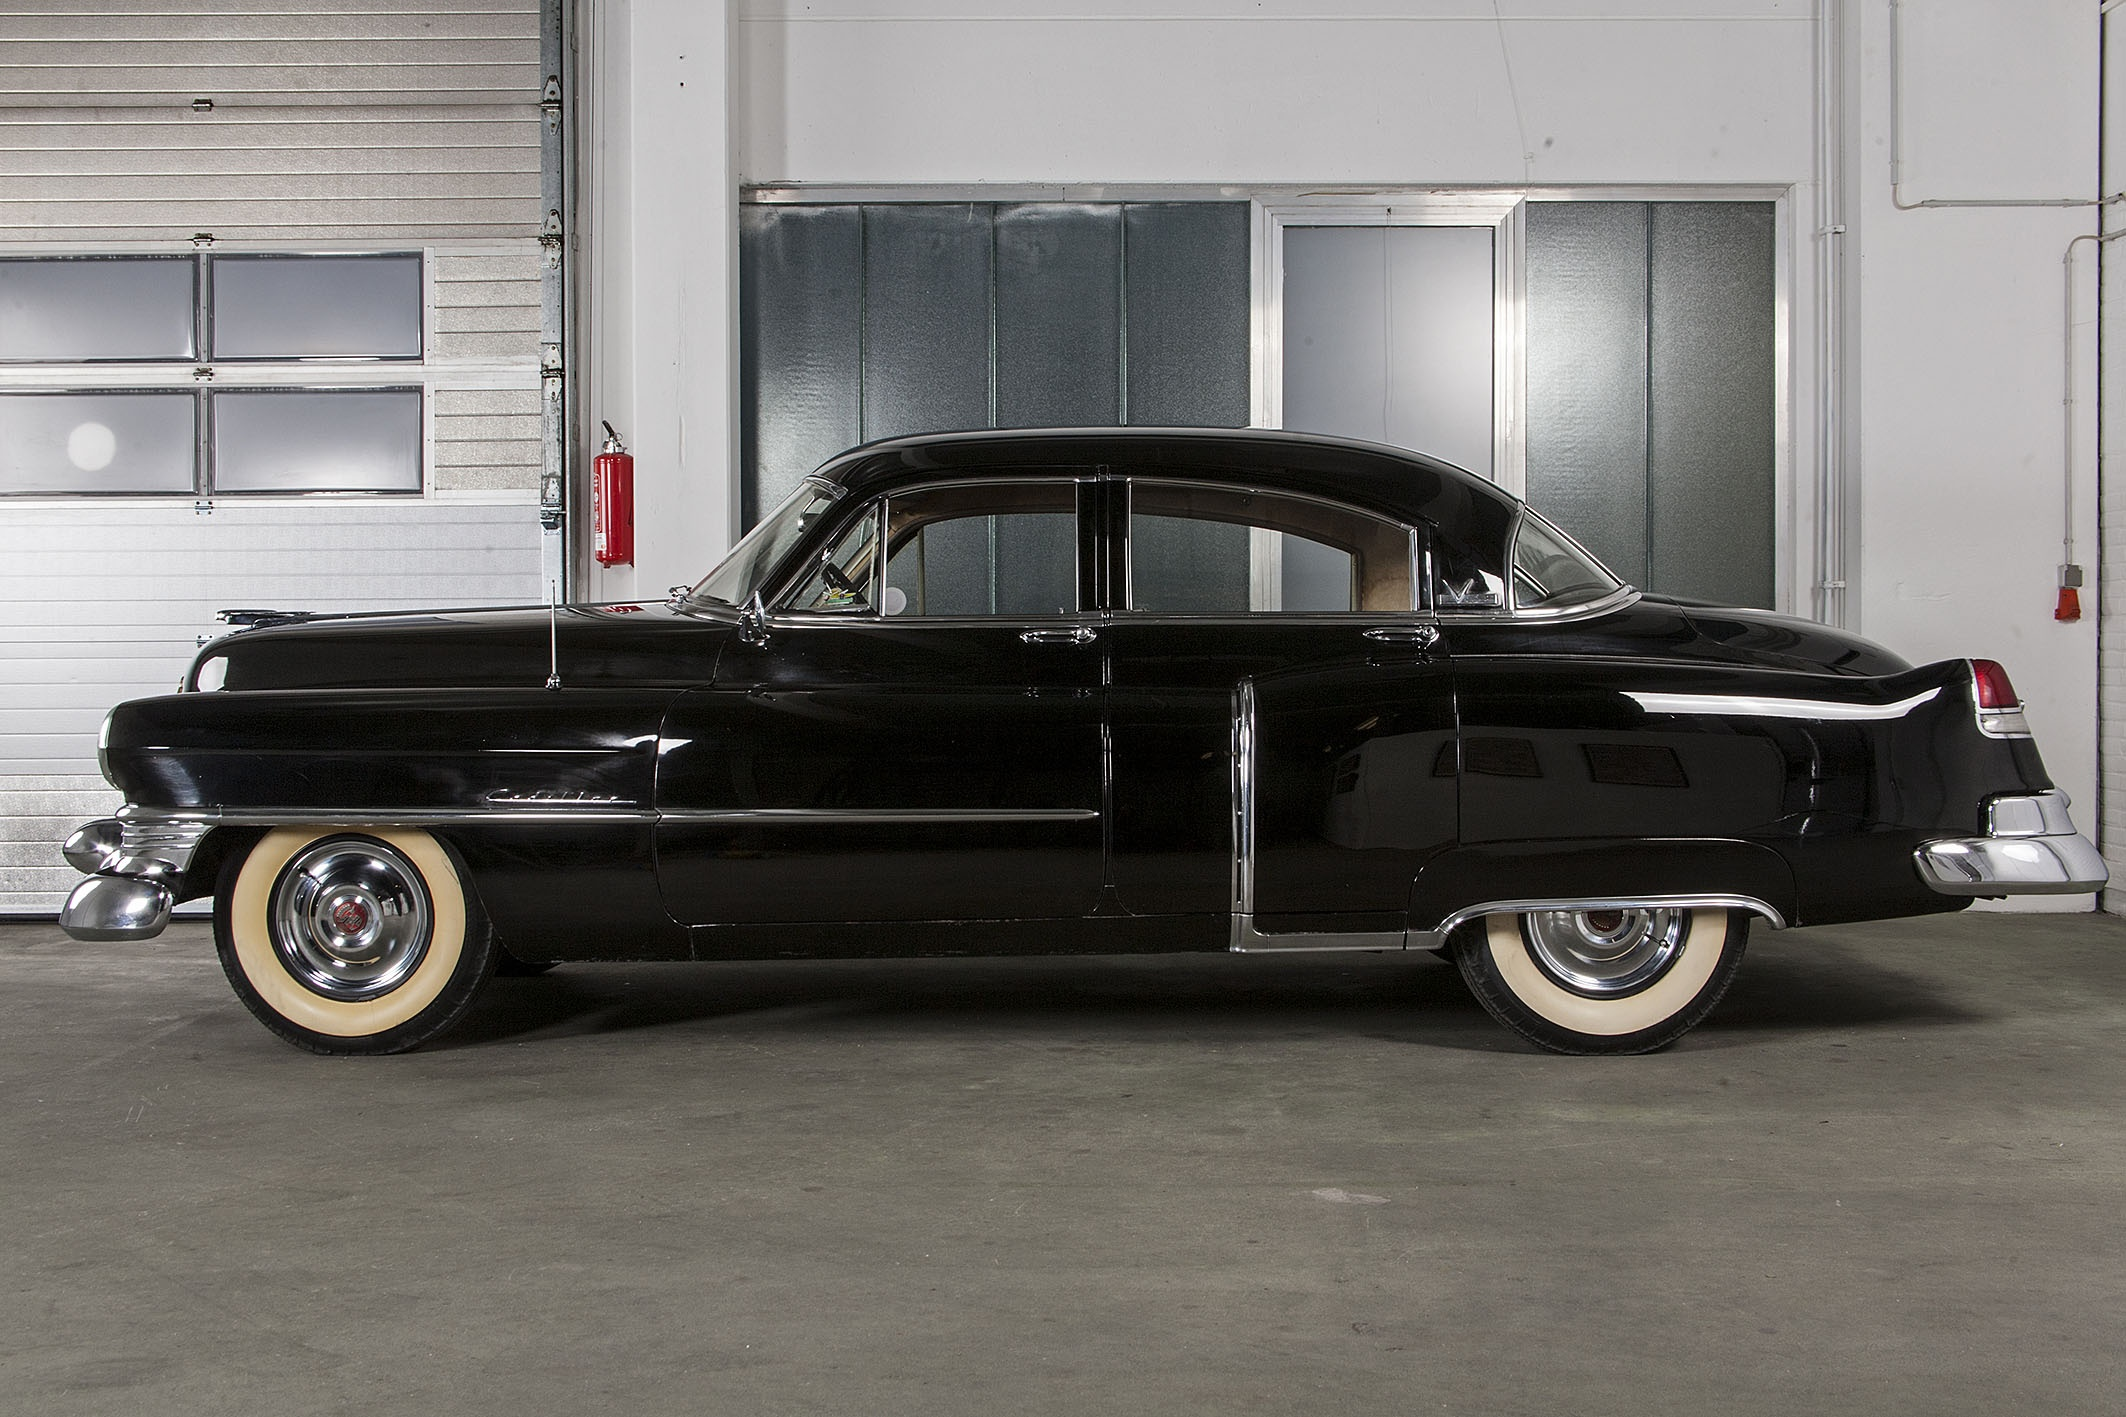 1951 Cadillac Series 61 Vintage Car For Sale 62 Coupe